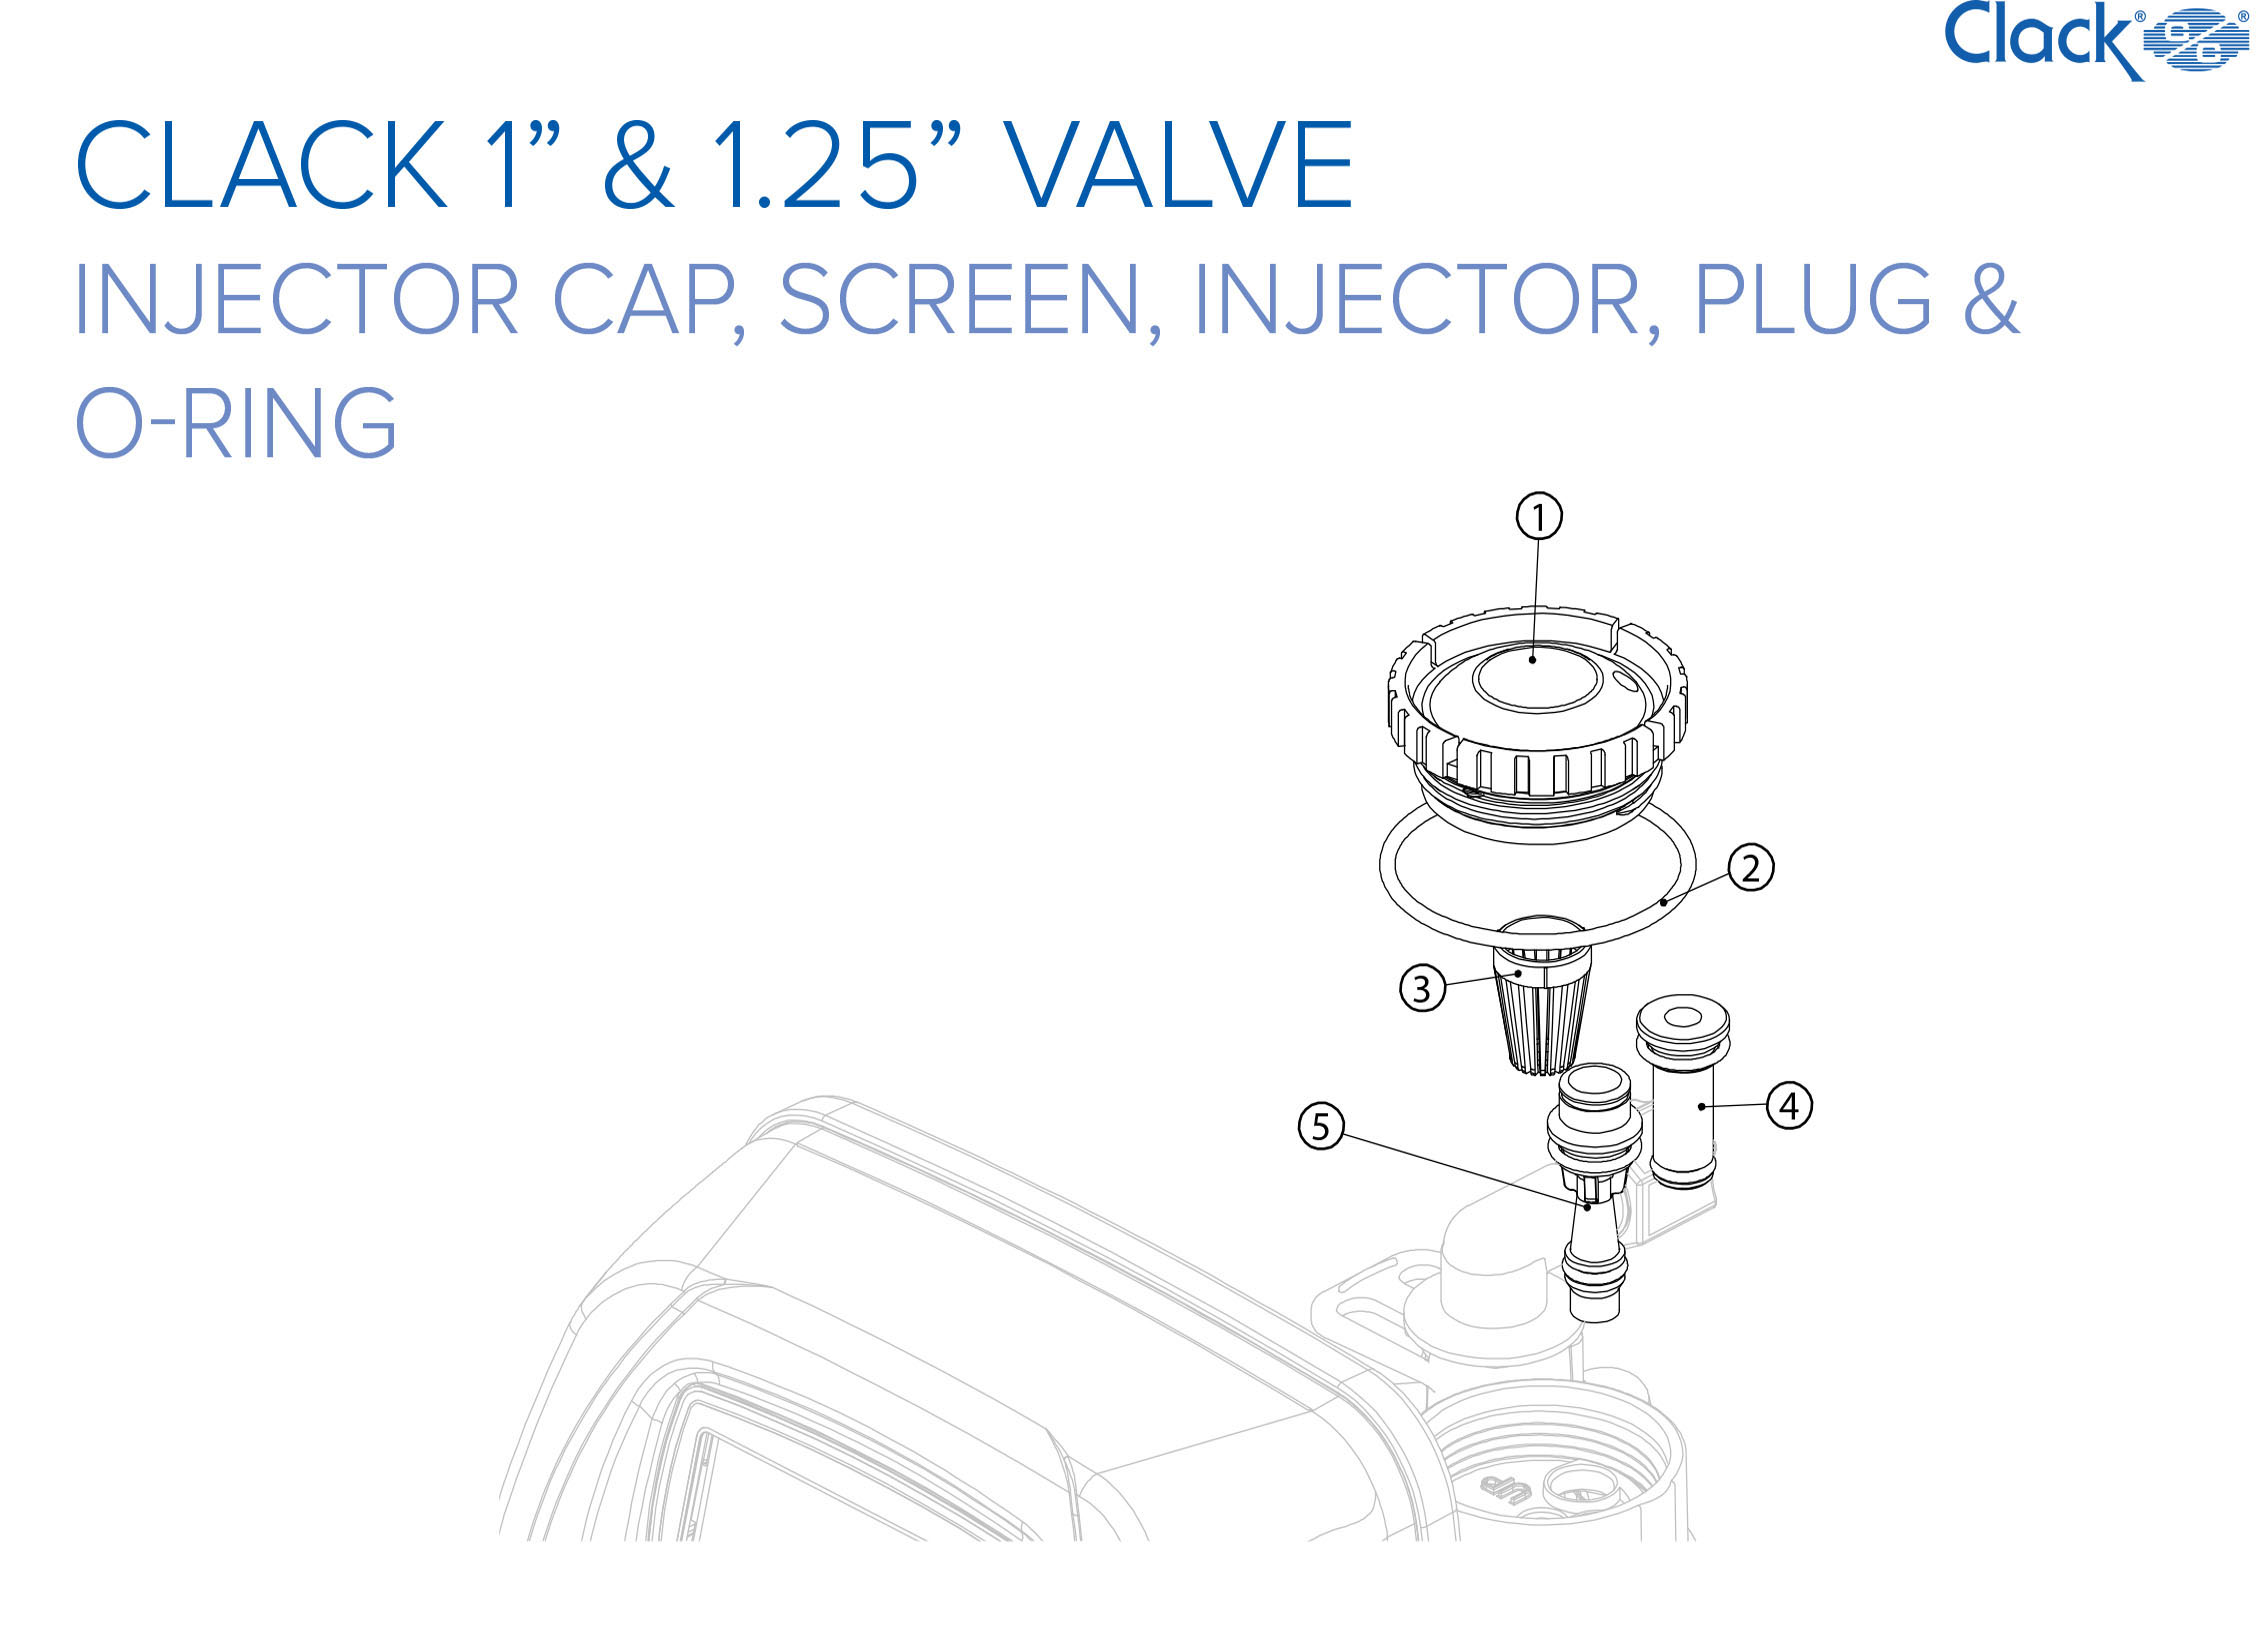 *** NEW *** Clack Spare Parts - Injector Cap, Screen, Injector, Plug & O-Ring